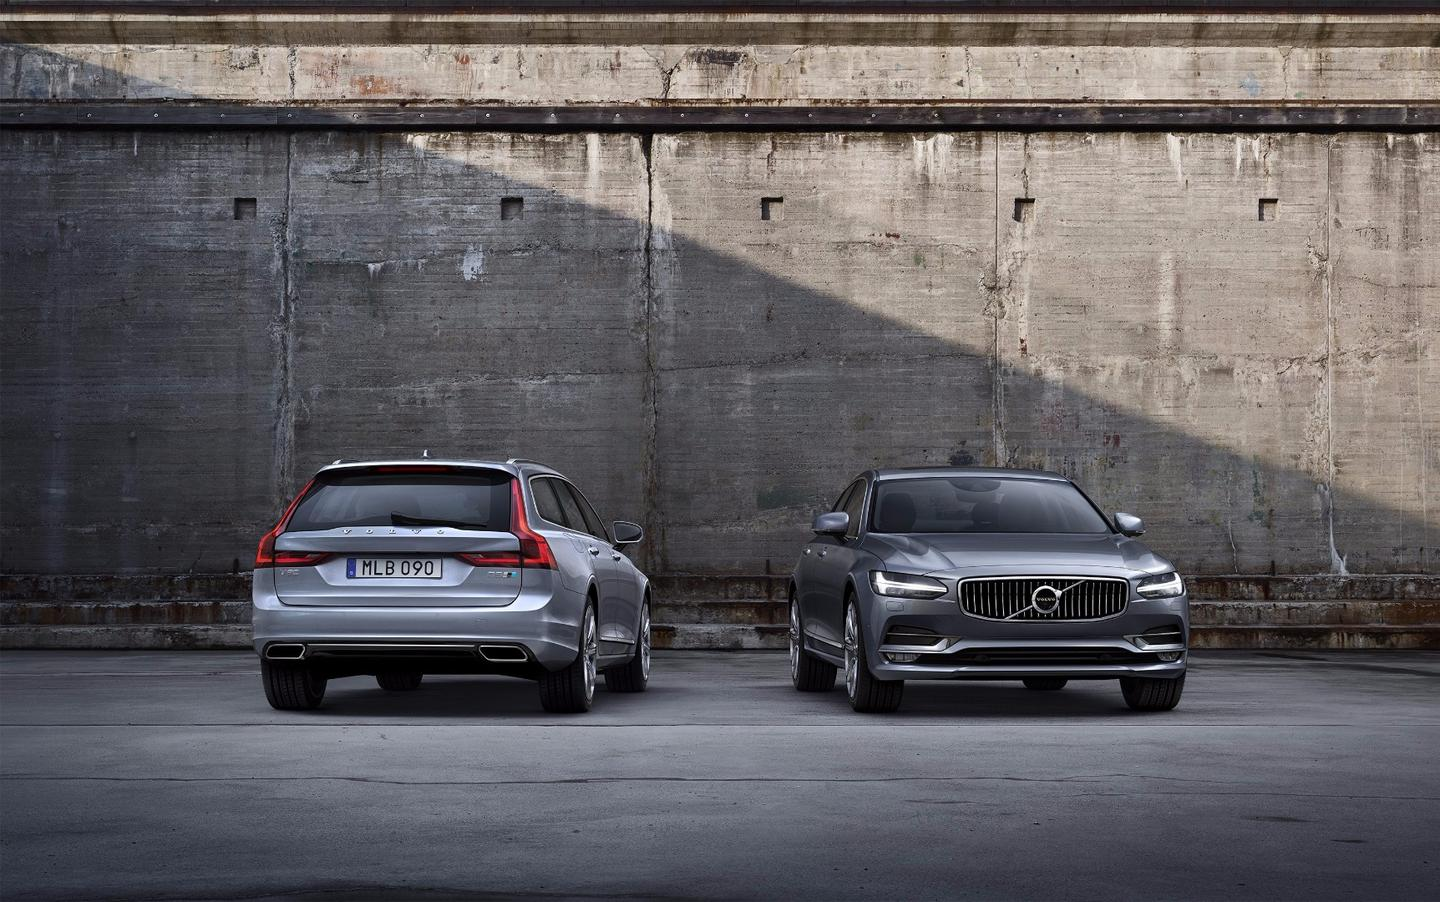 The S90 and V90 Polestars get throttle response, gear speed and precision, and engine performance upgrades